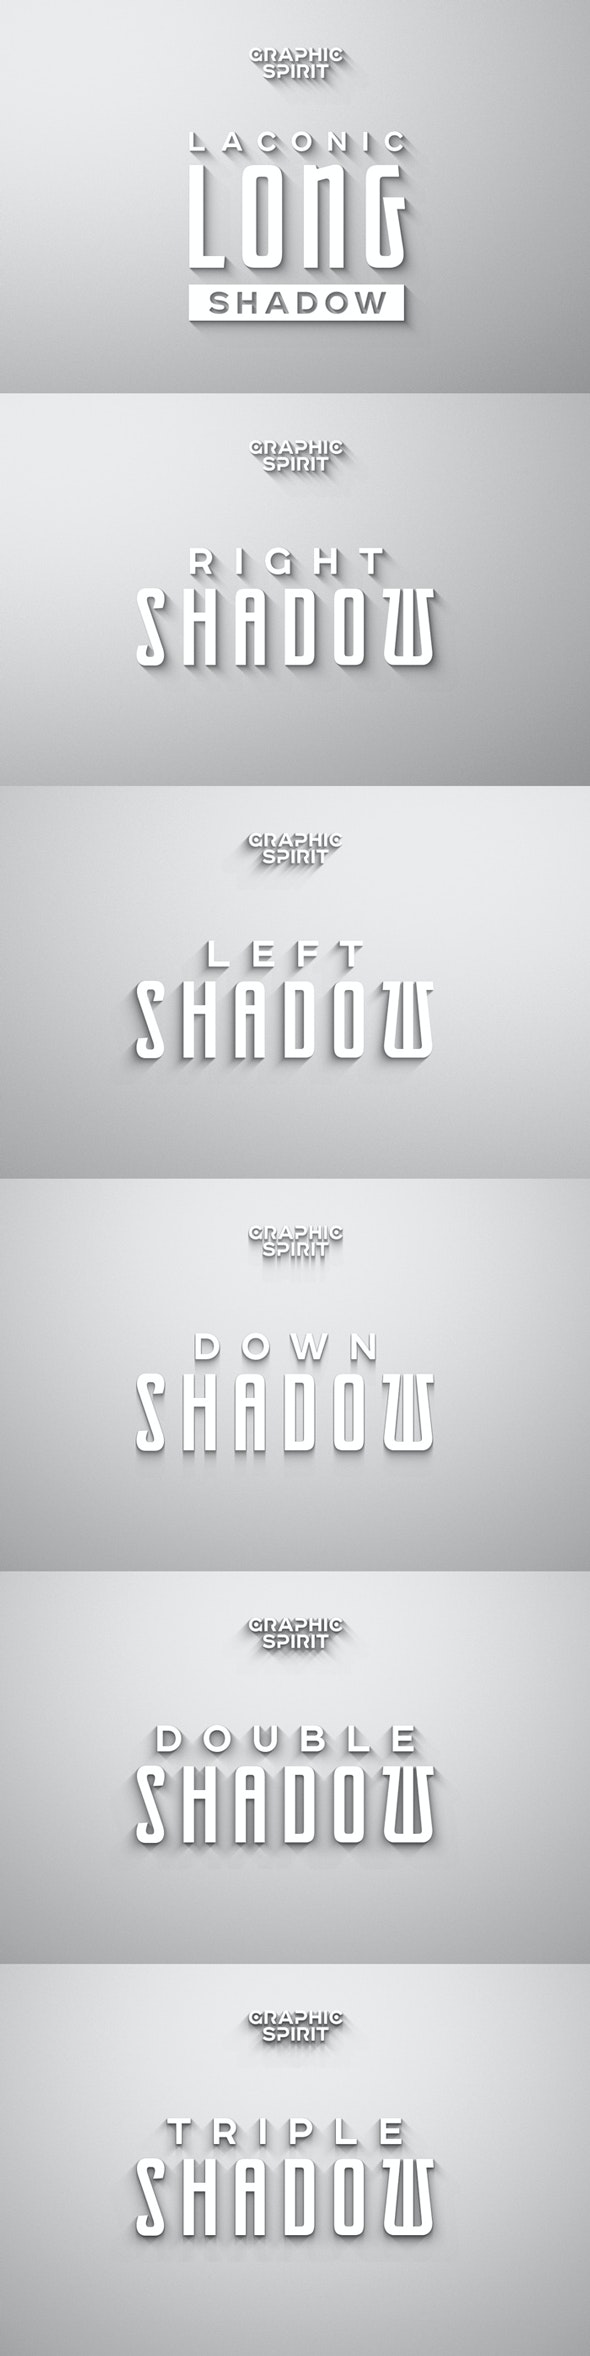 Laconic Long Shadow for Photoshop - Text Effects Actions